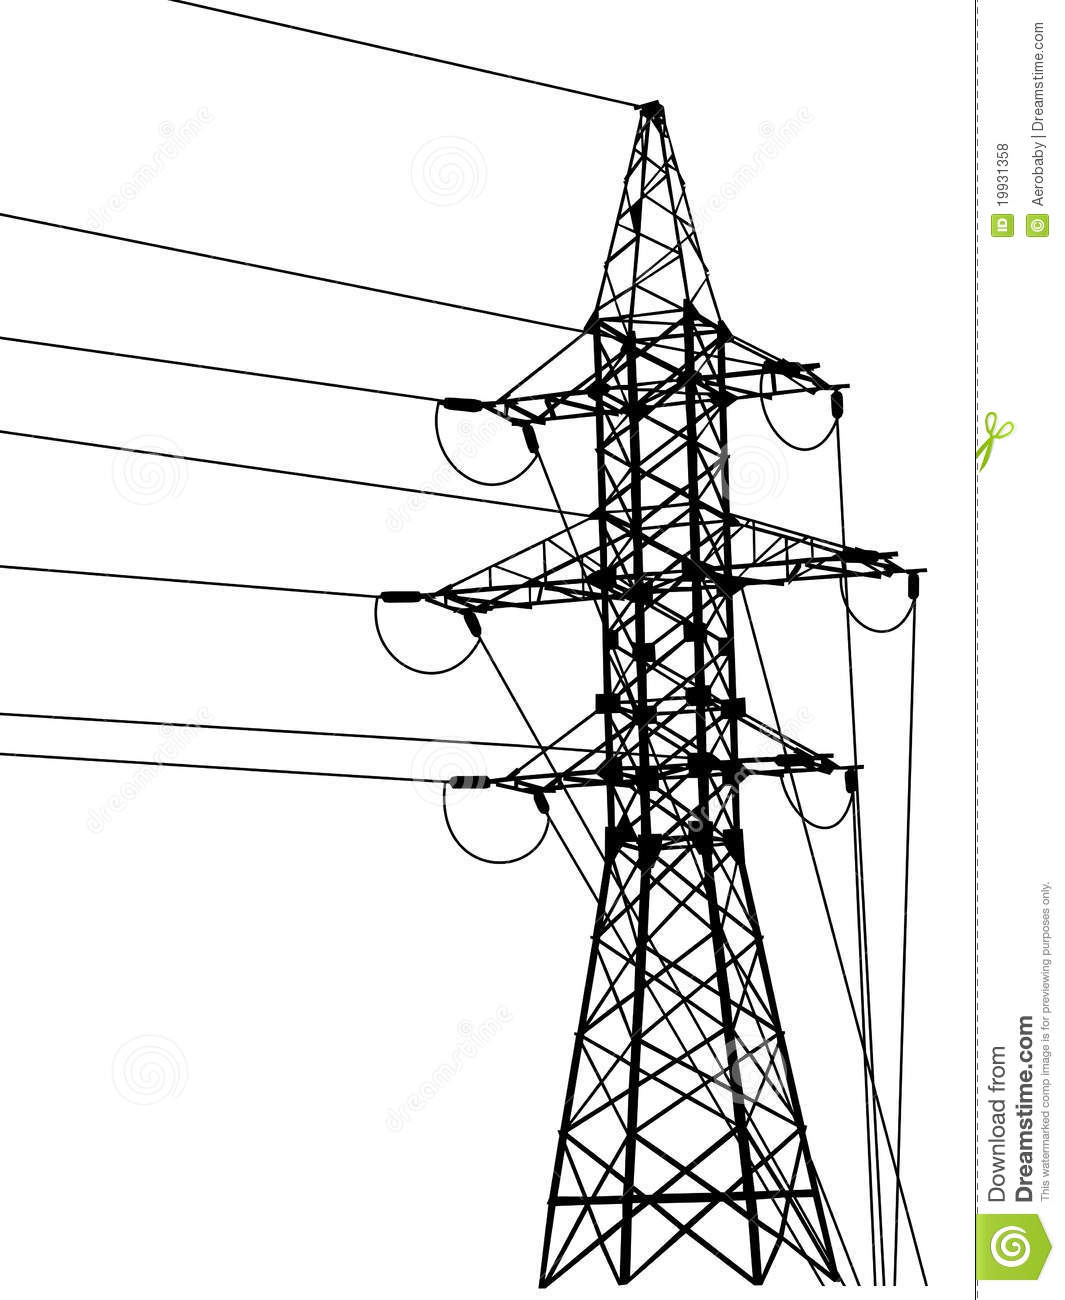 high-voltage tower silhouette  stock vector